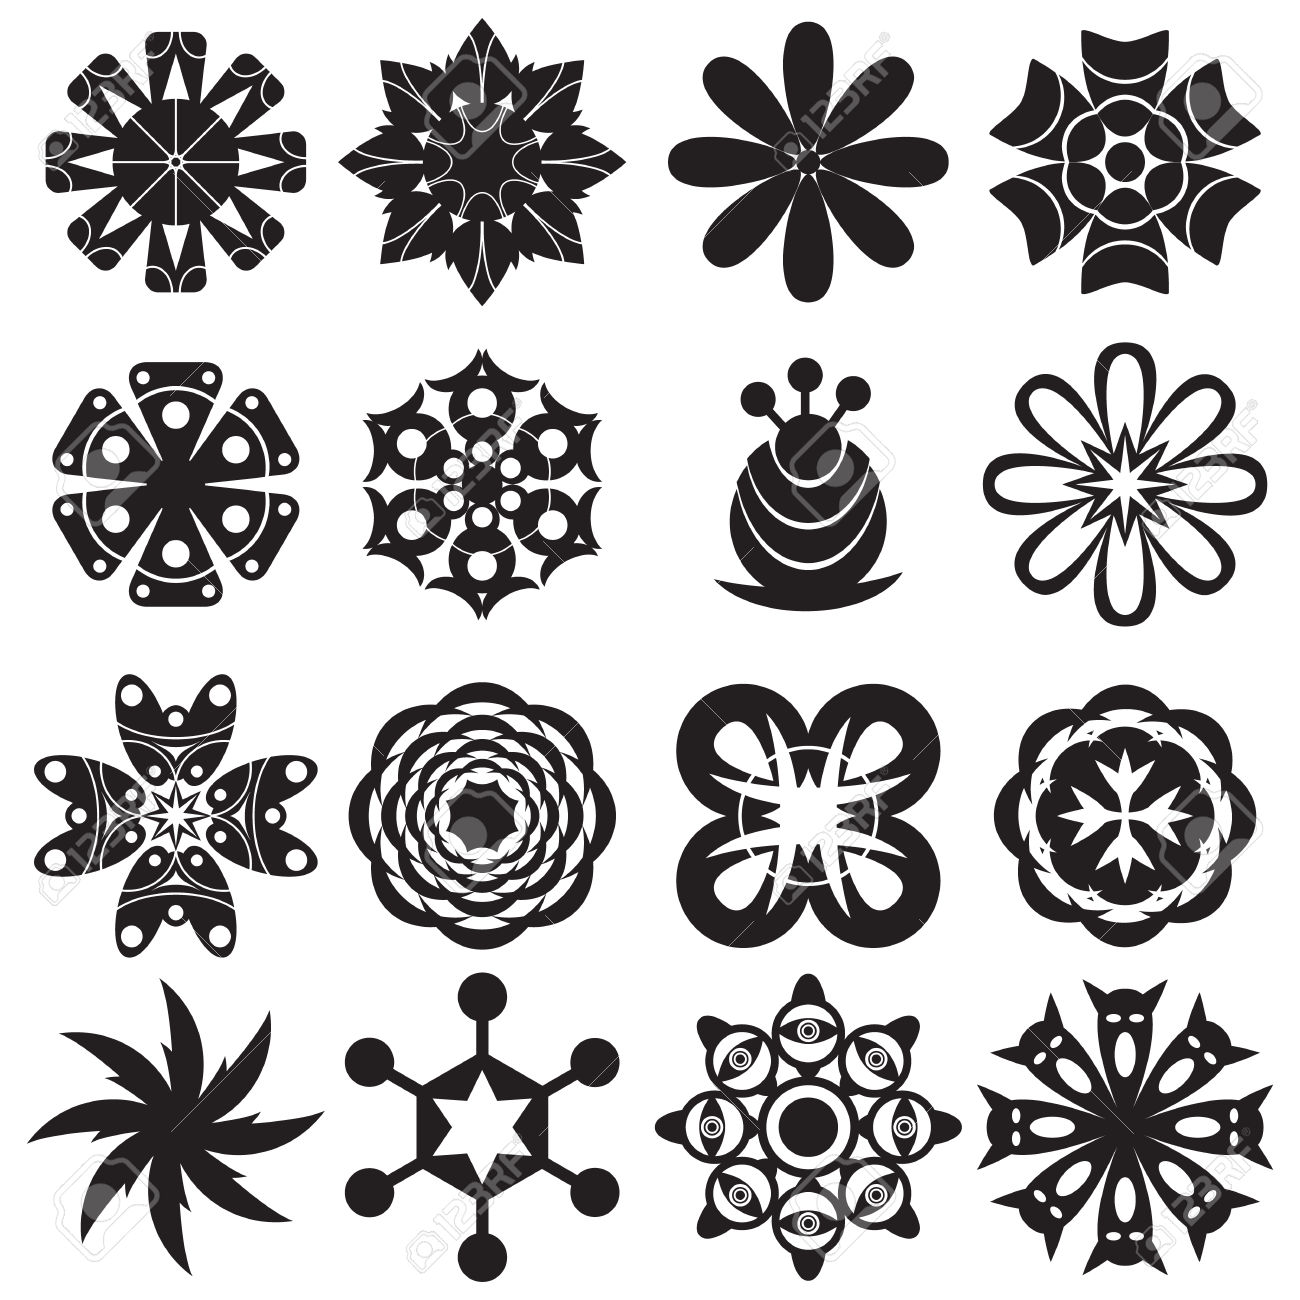 Flower graphic images image freeuse download Graphic flower images - ClipartFest image freeuse download